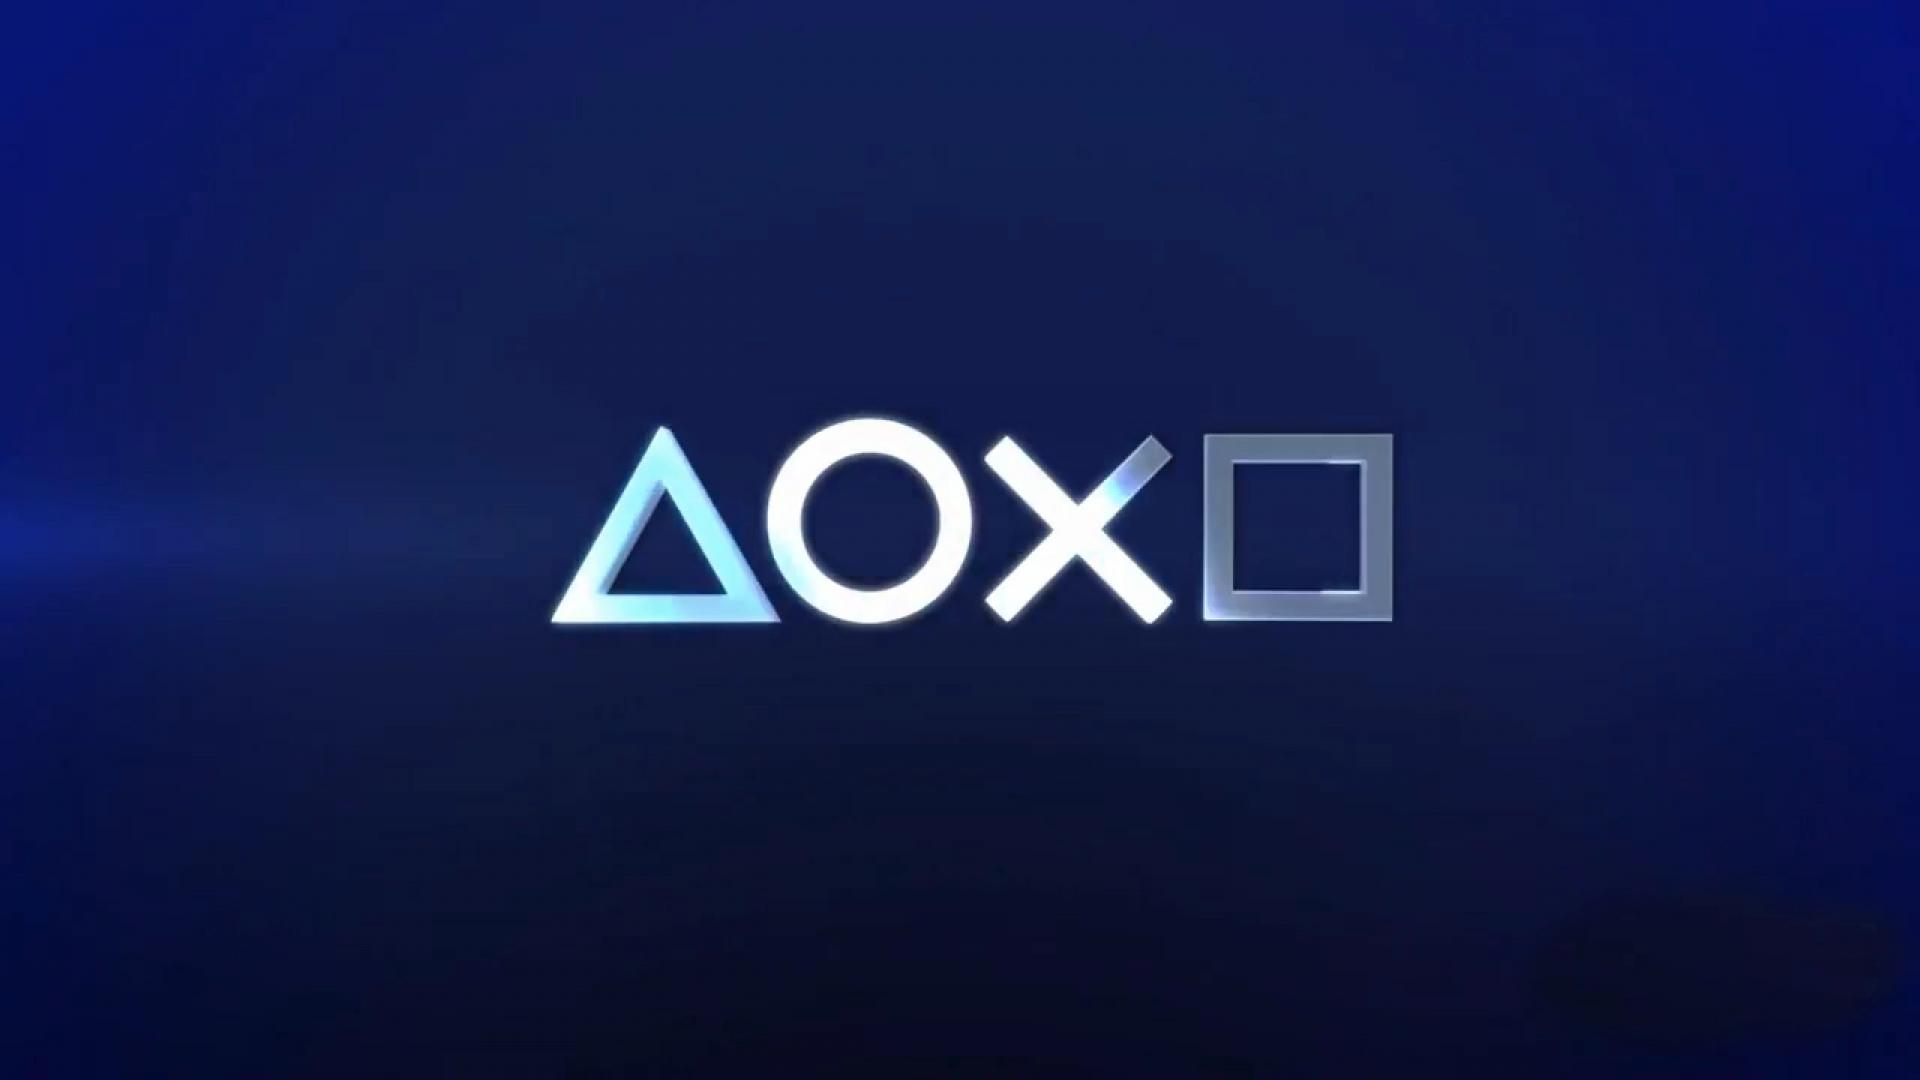 Ps4 Wallpaper 1080p Ps4 Wallpapers in 1080p Xbox 1920x1080